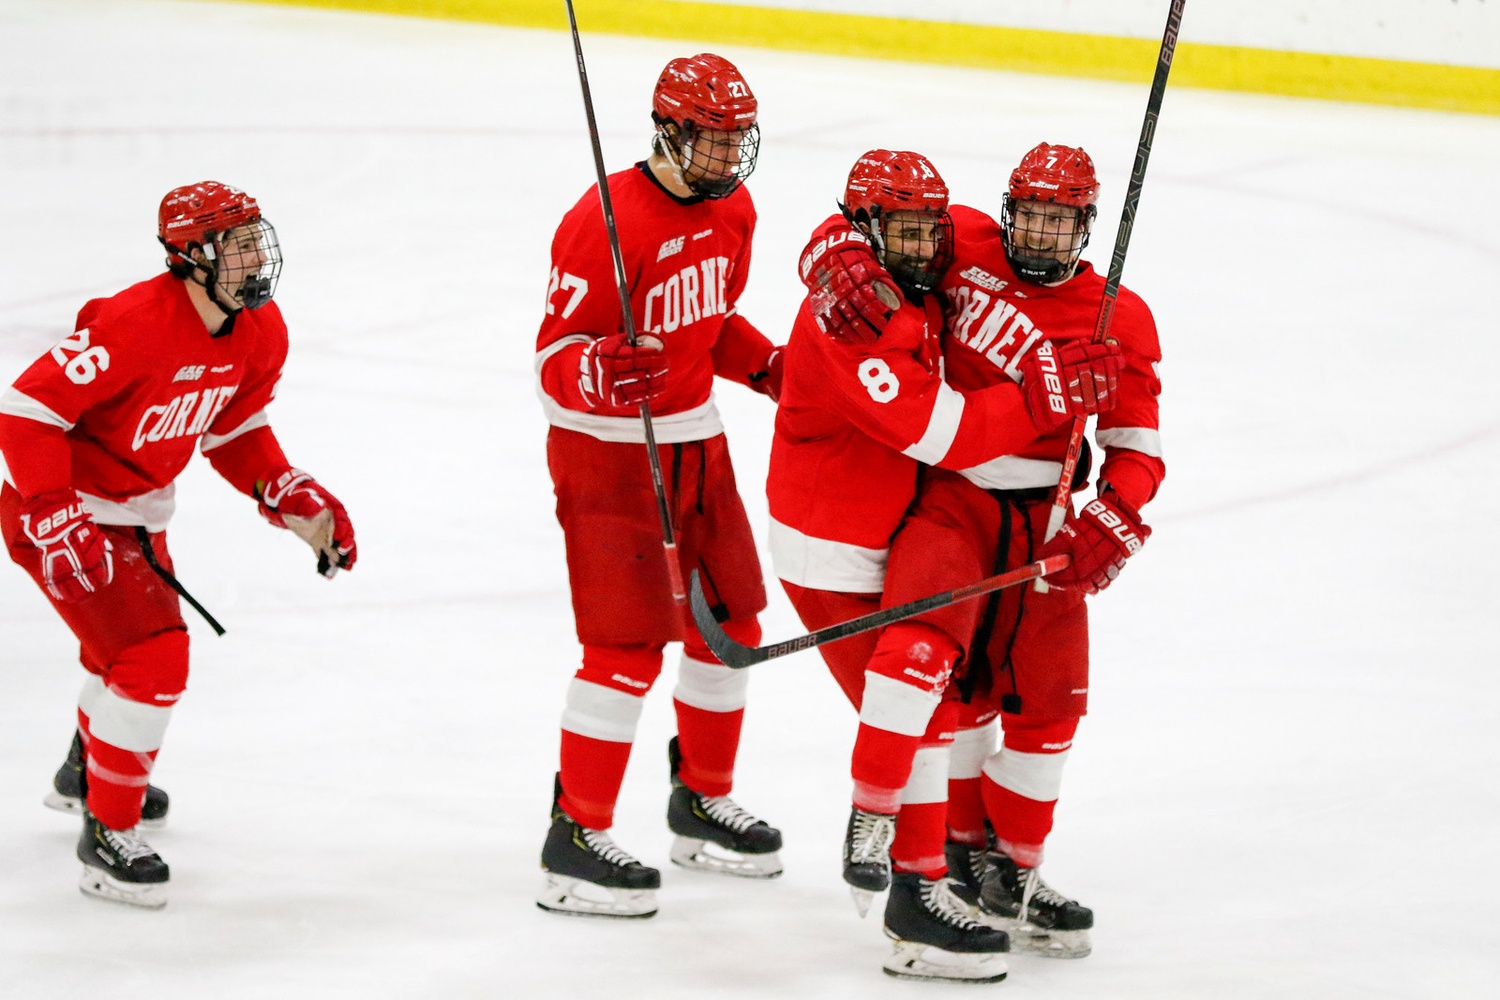 No. 16 Cornell dominated the second period en route to avenging Harvard's win one week prior. The teams will also meet at the Big Red's Lynah Rink in January.